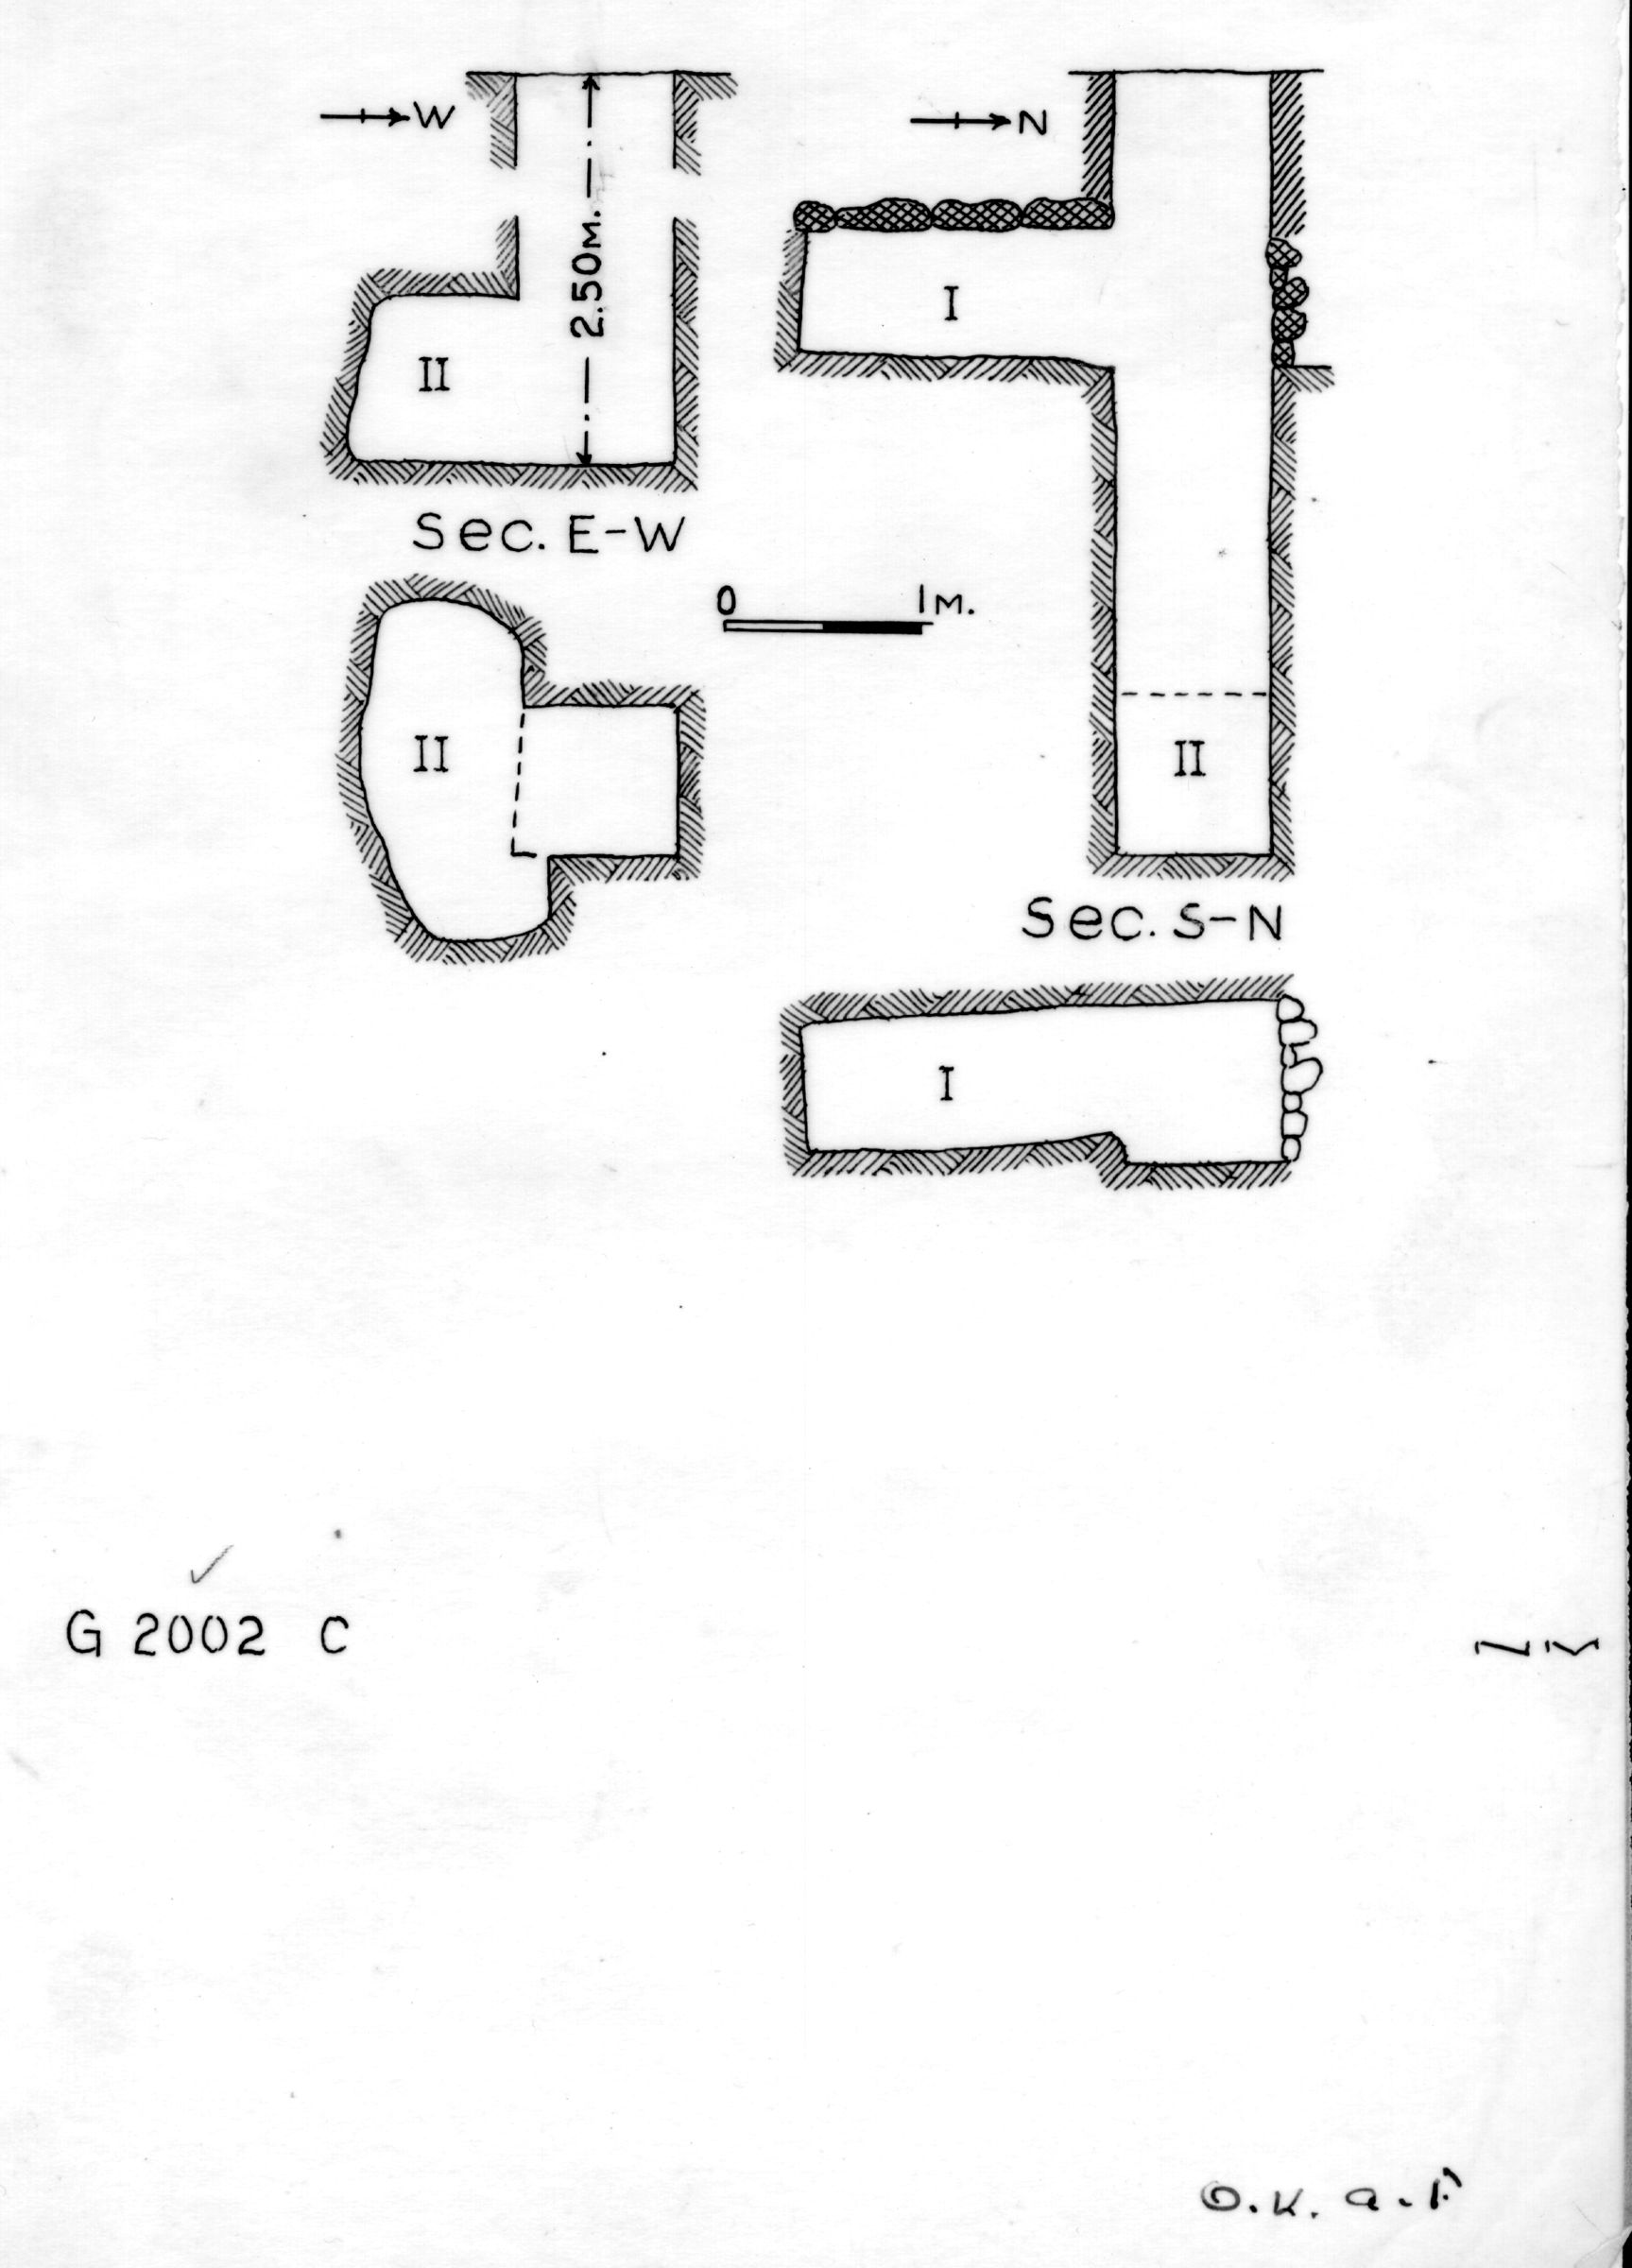 Maps and plans: G 2002, Shaft C